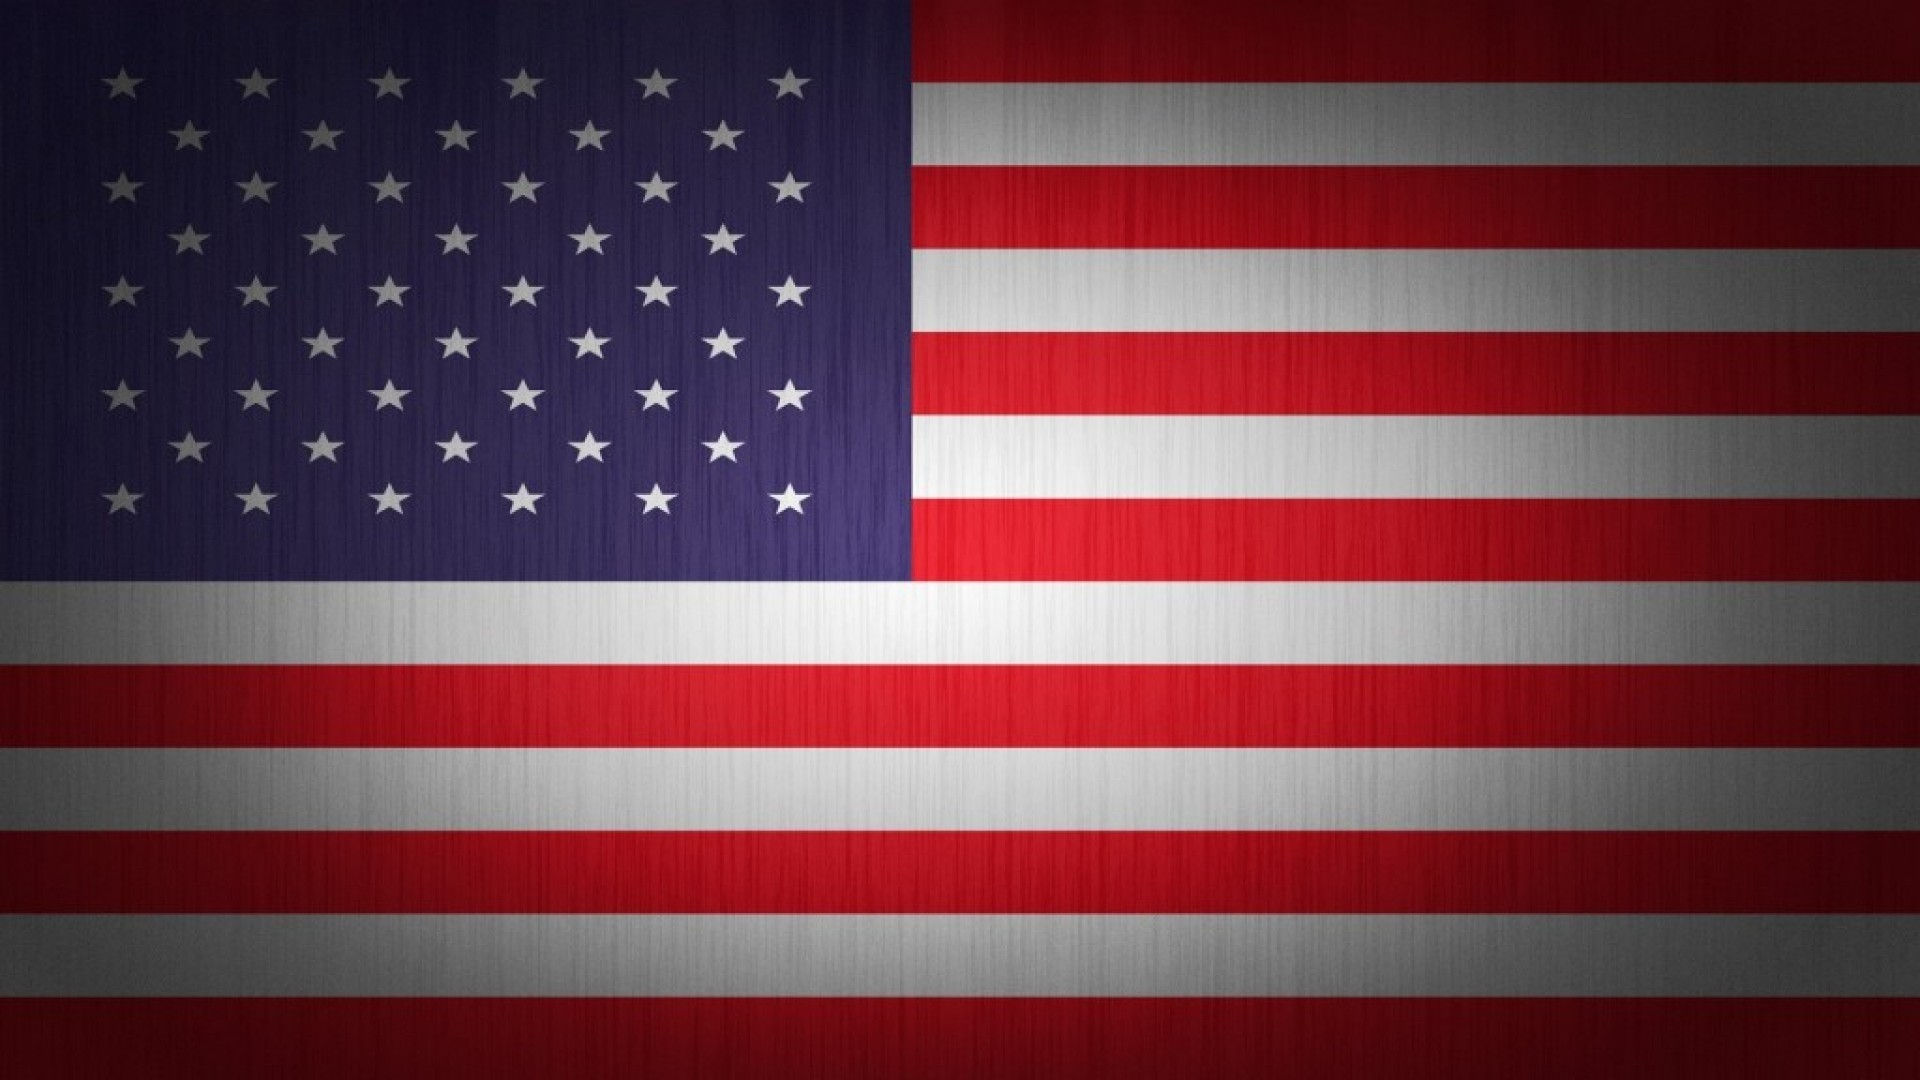 Collection of American Flag Iphone Wallpaper on HDWallpapers 1920×1080